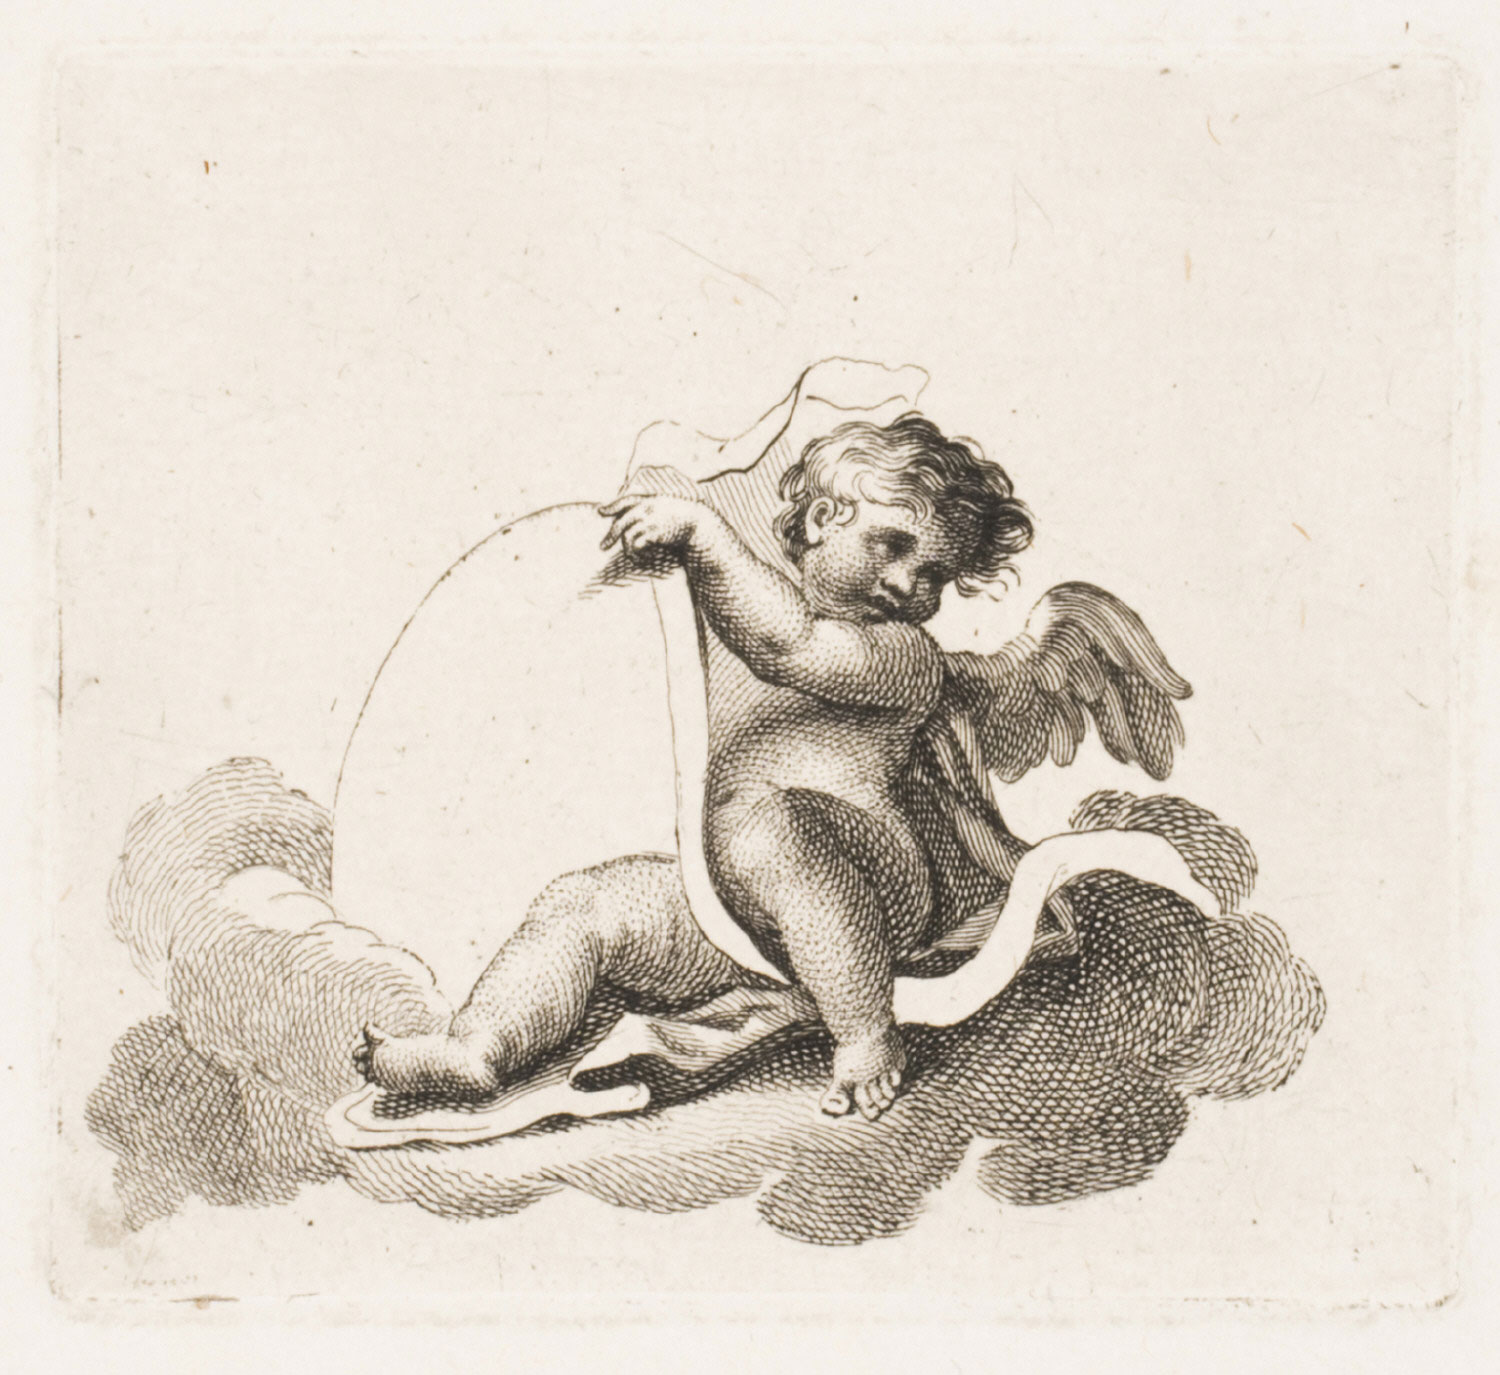 A Cherub, Seated among Clouds (Design for Ticket or Trade Card)